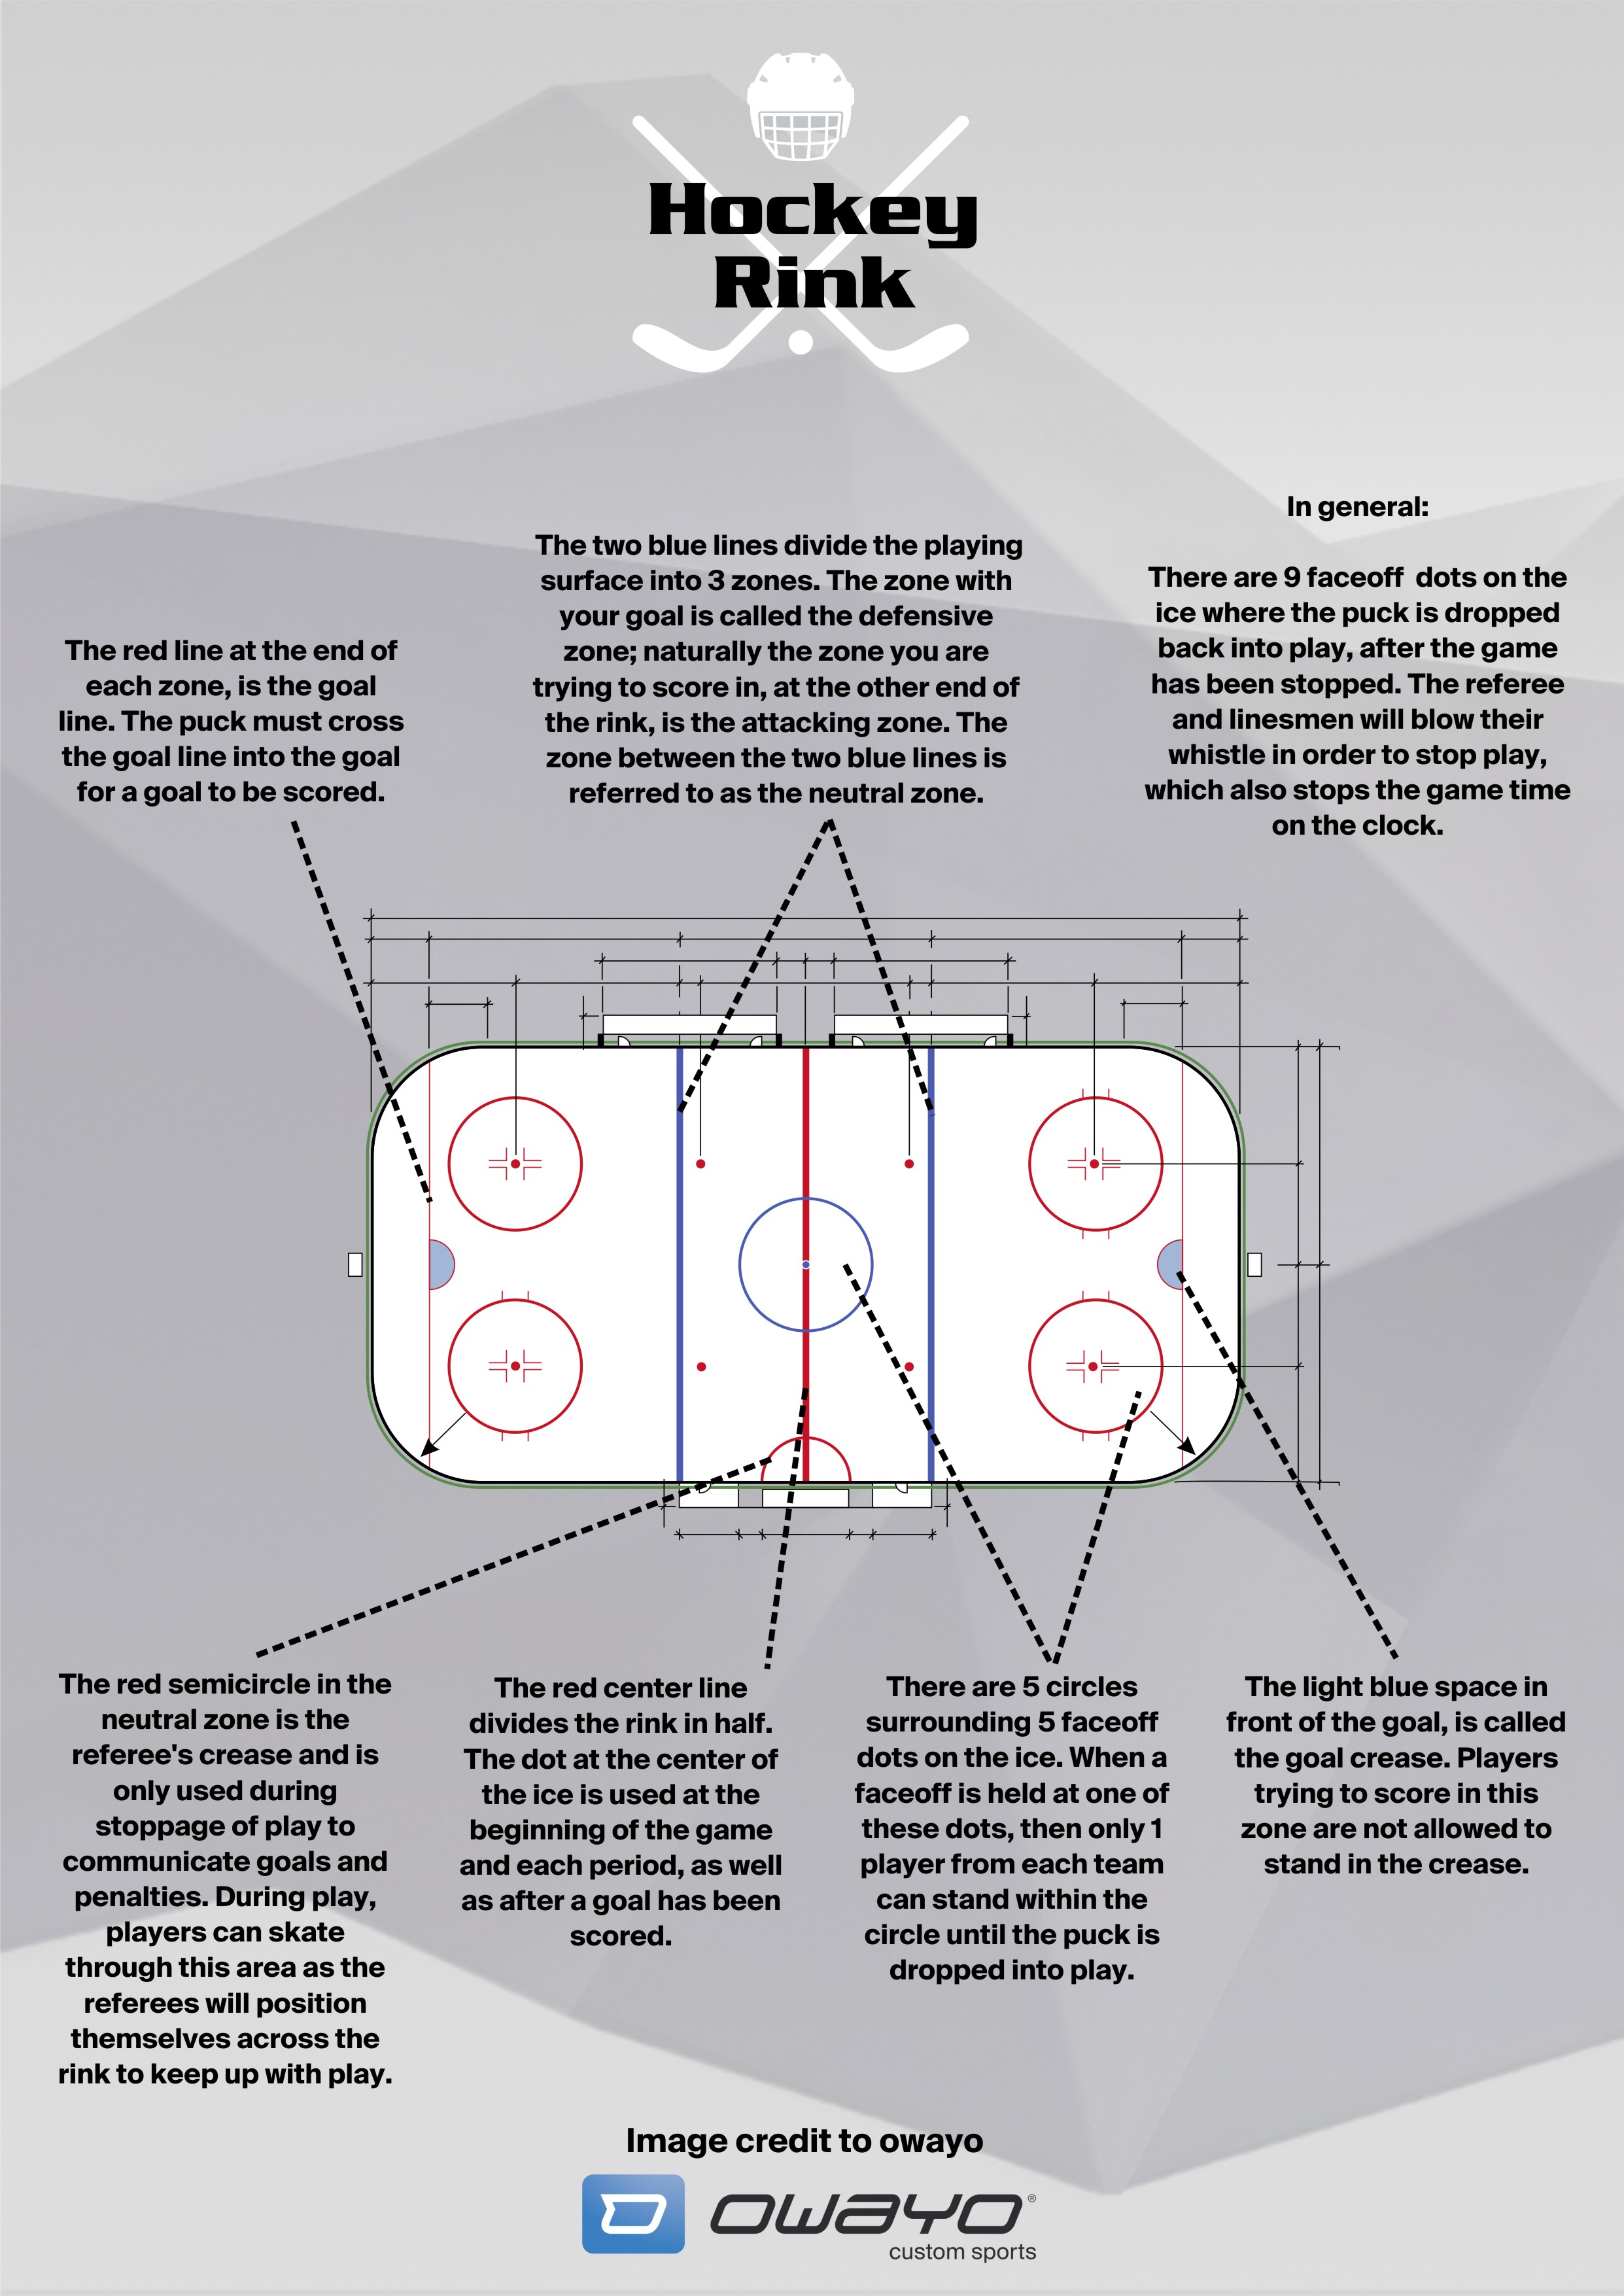 Hockey, the rules of the game